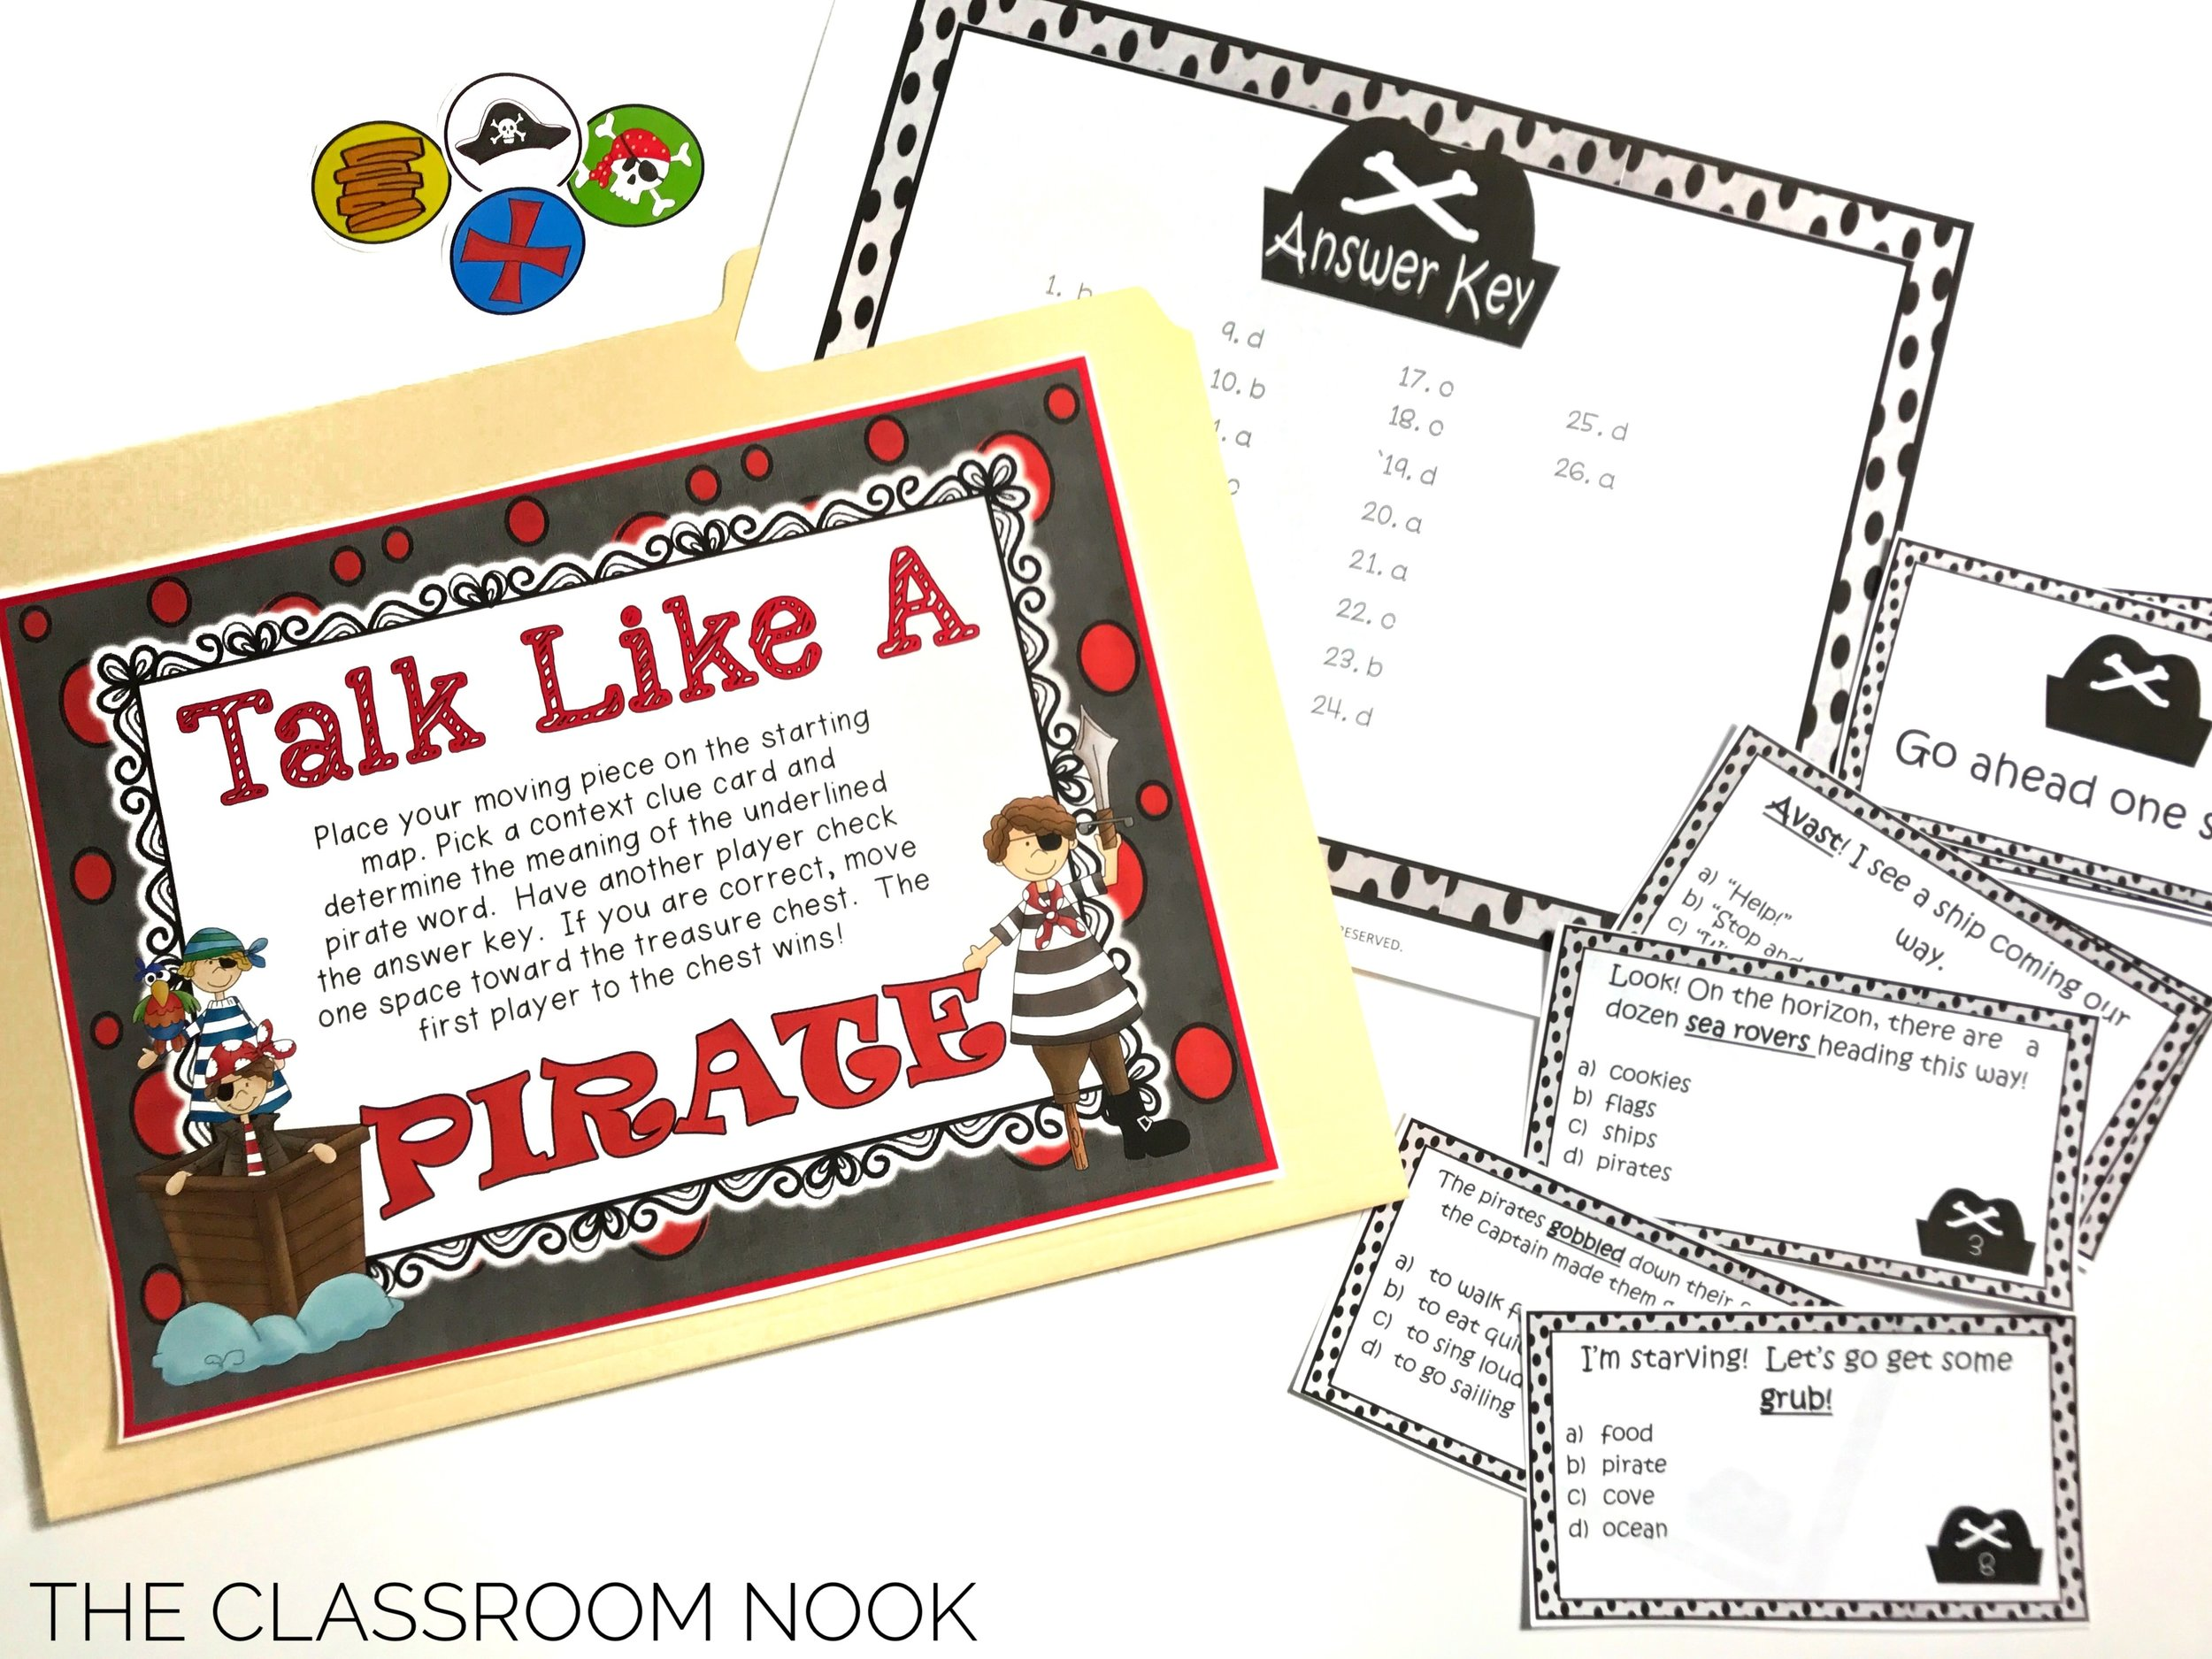 Students use context clues when reading pirate words to help them determine the meaning.